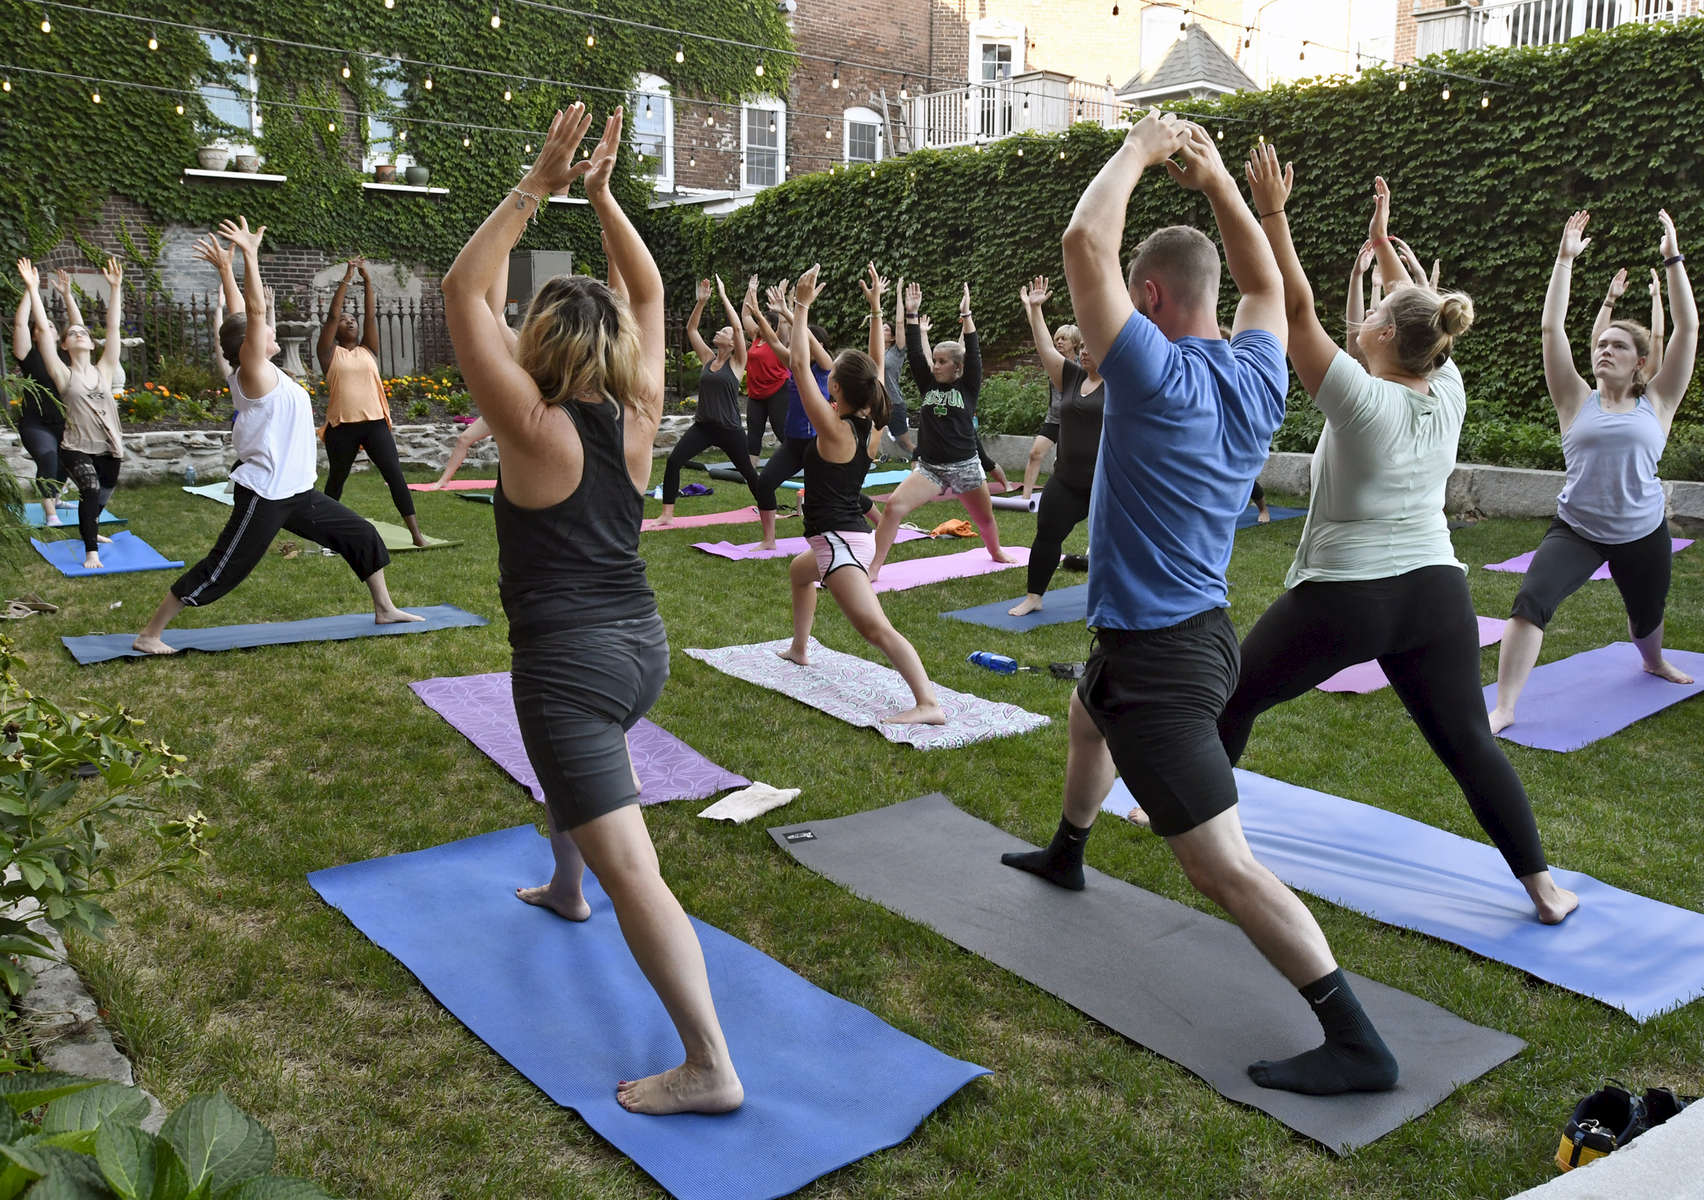 Flowforms Yoga instructor Polly Hensel leads a Hatha yoga class at Crompton Place on Thursday, August 4, 2016. Every Thursday in July and August, the studio offers a free outdoor class at 9pm in the courtyard.